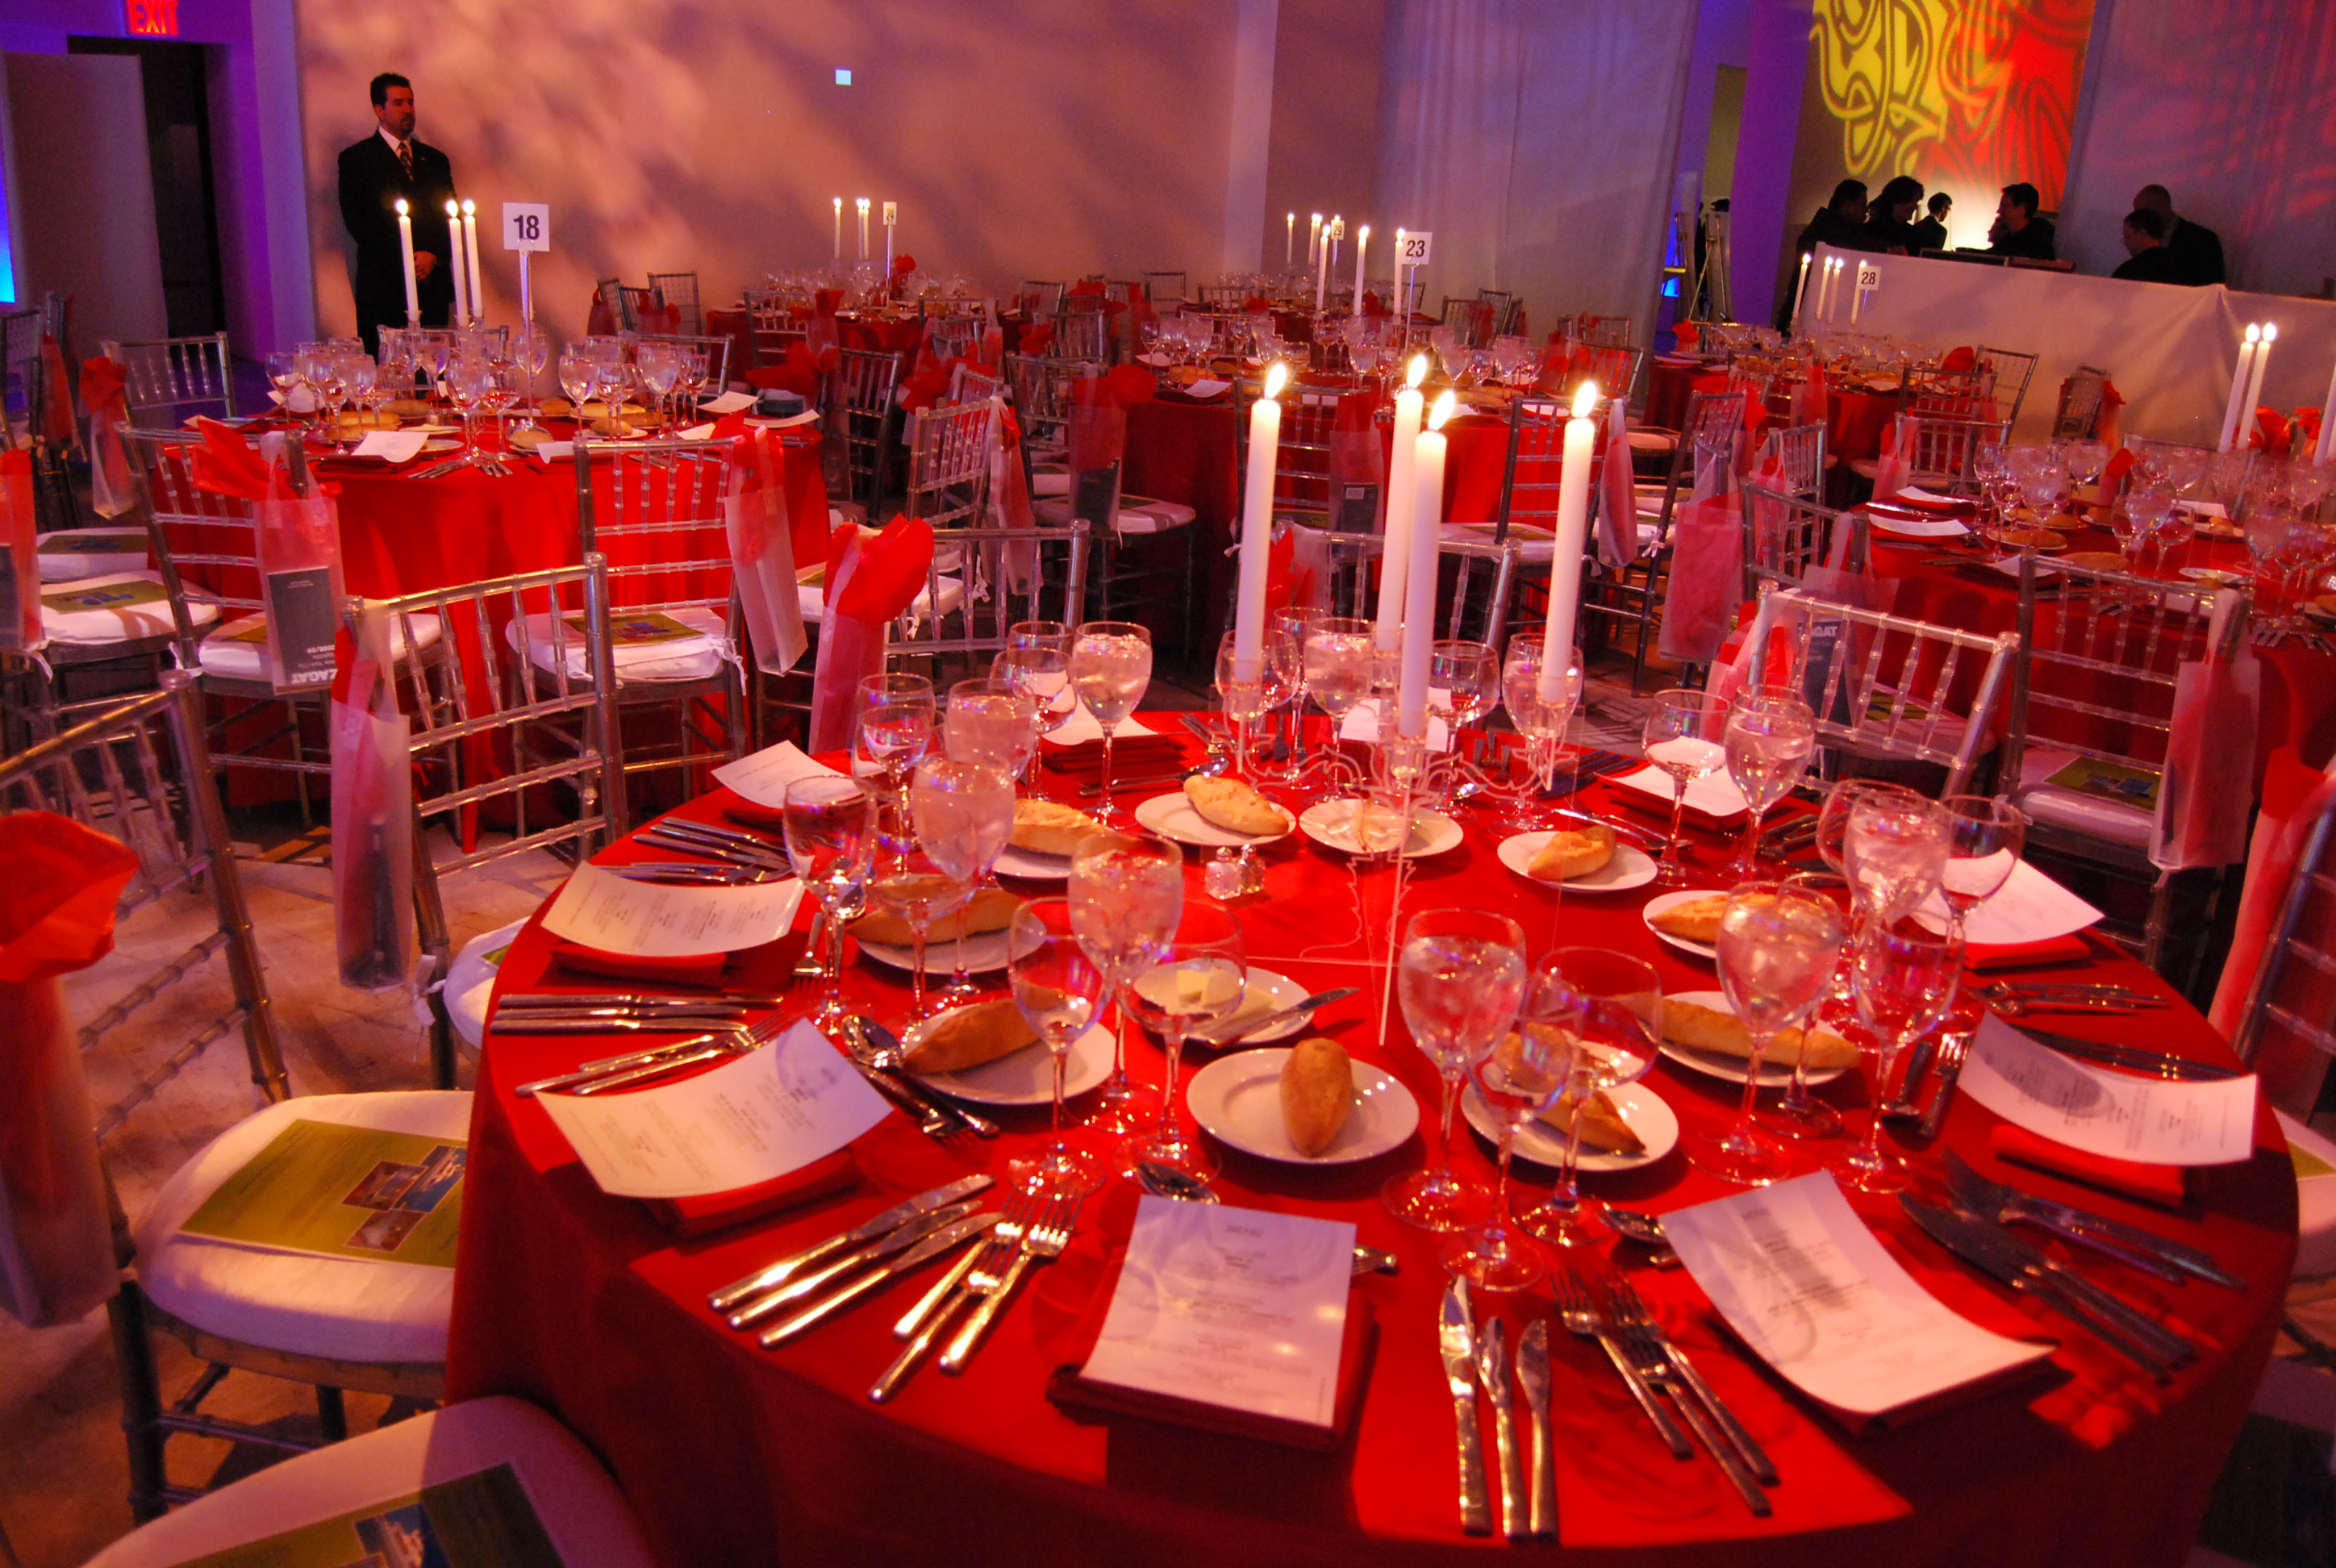 File:GMHC 2009 Dinner Table